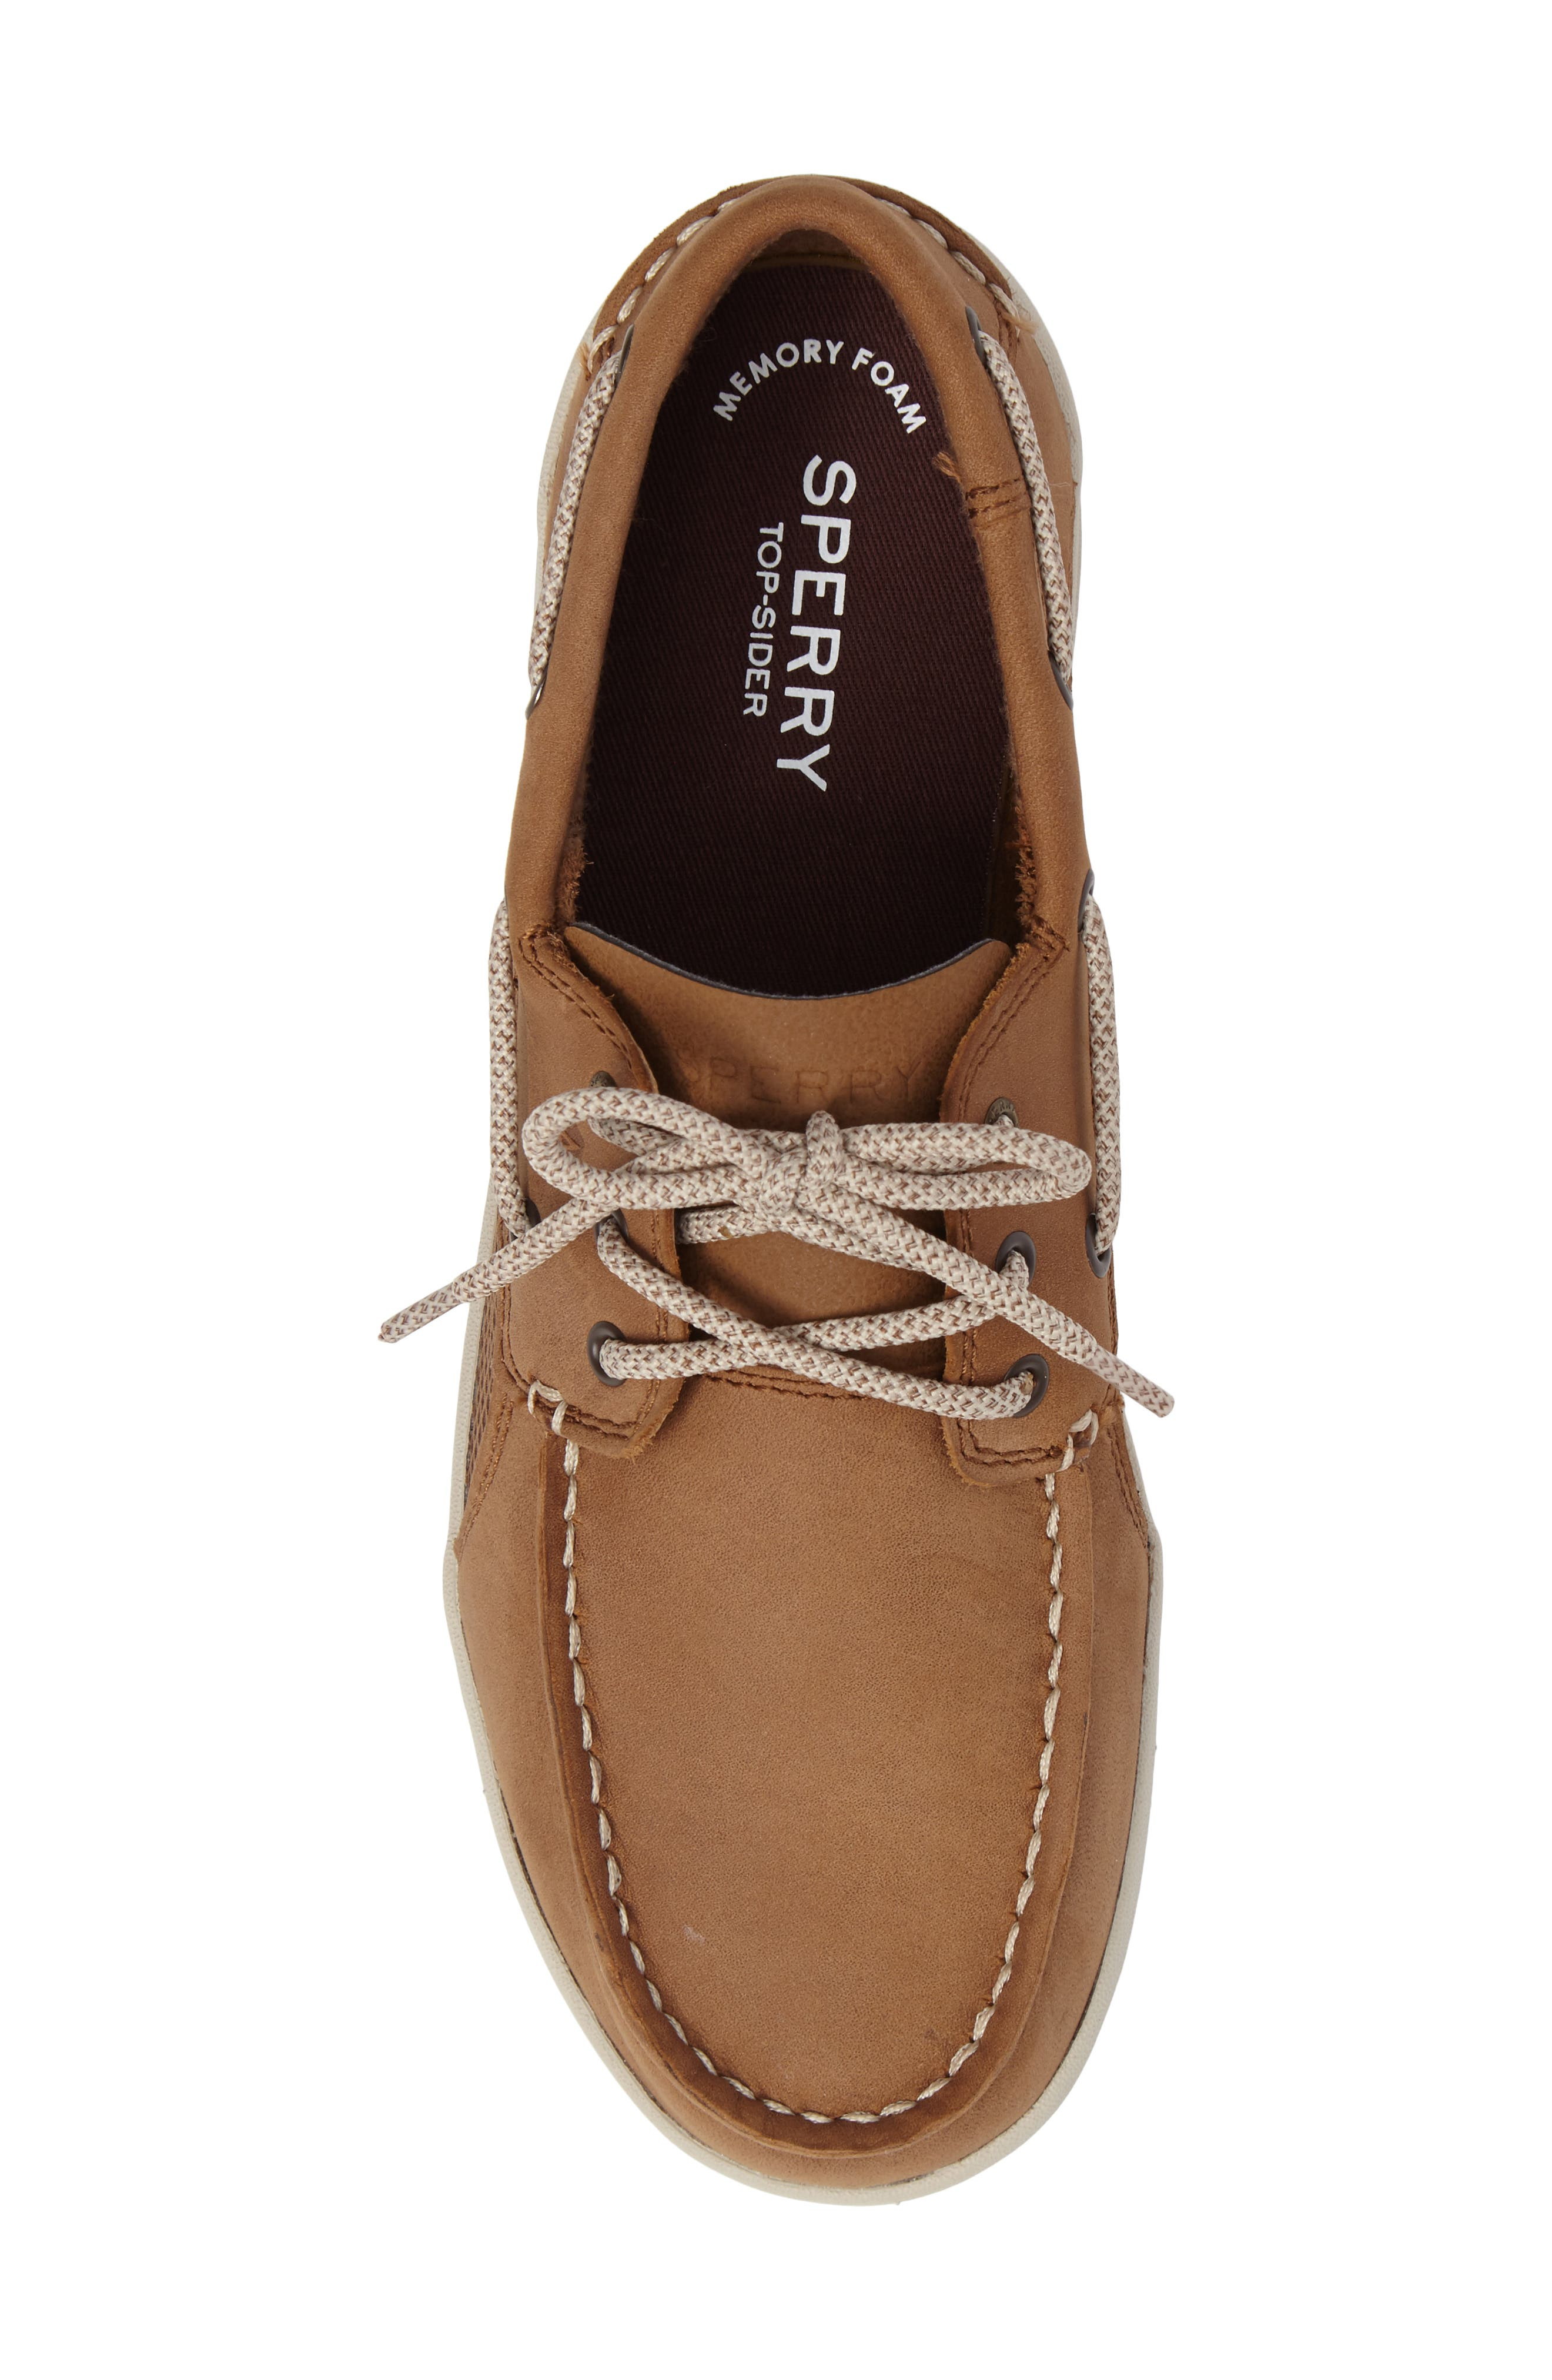 Sperry Gamefish Boat Shoe,                             Alternate thumbnail 5, color,                             Dark Tan